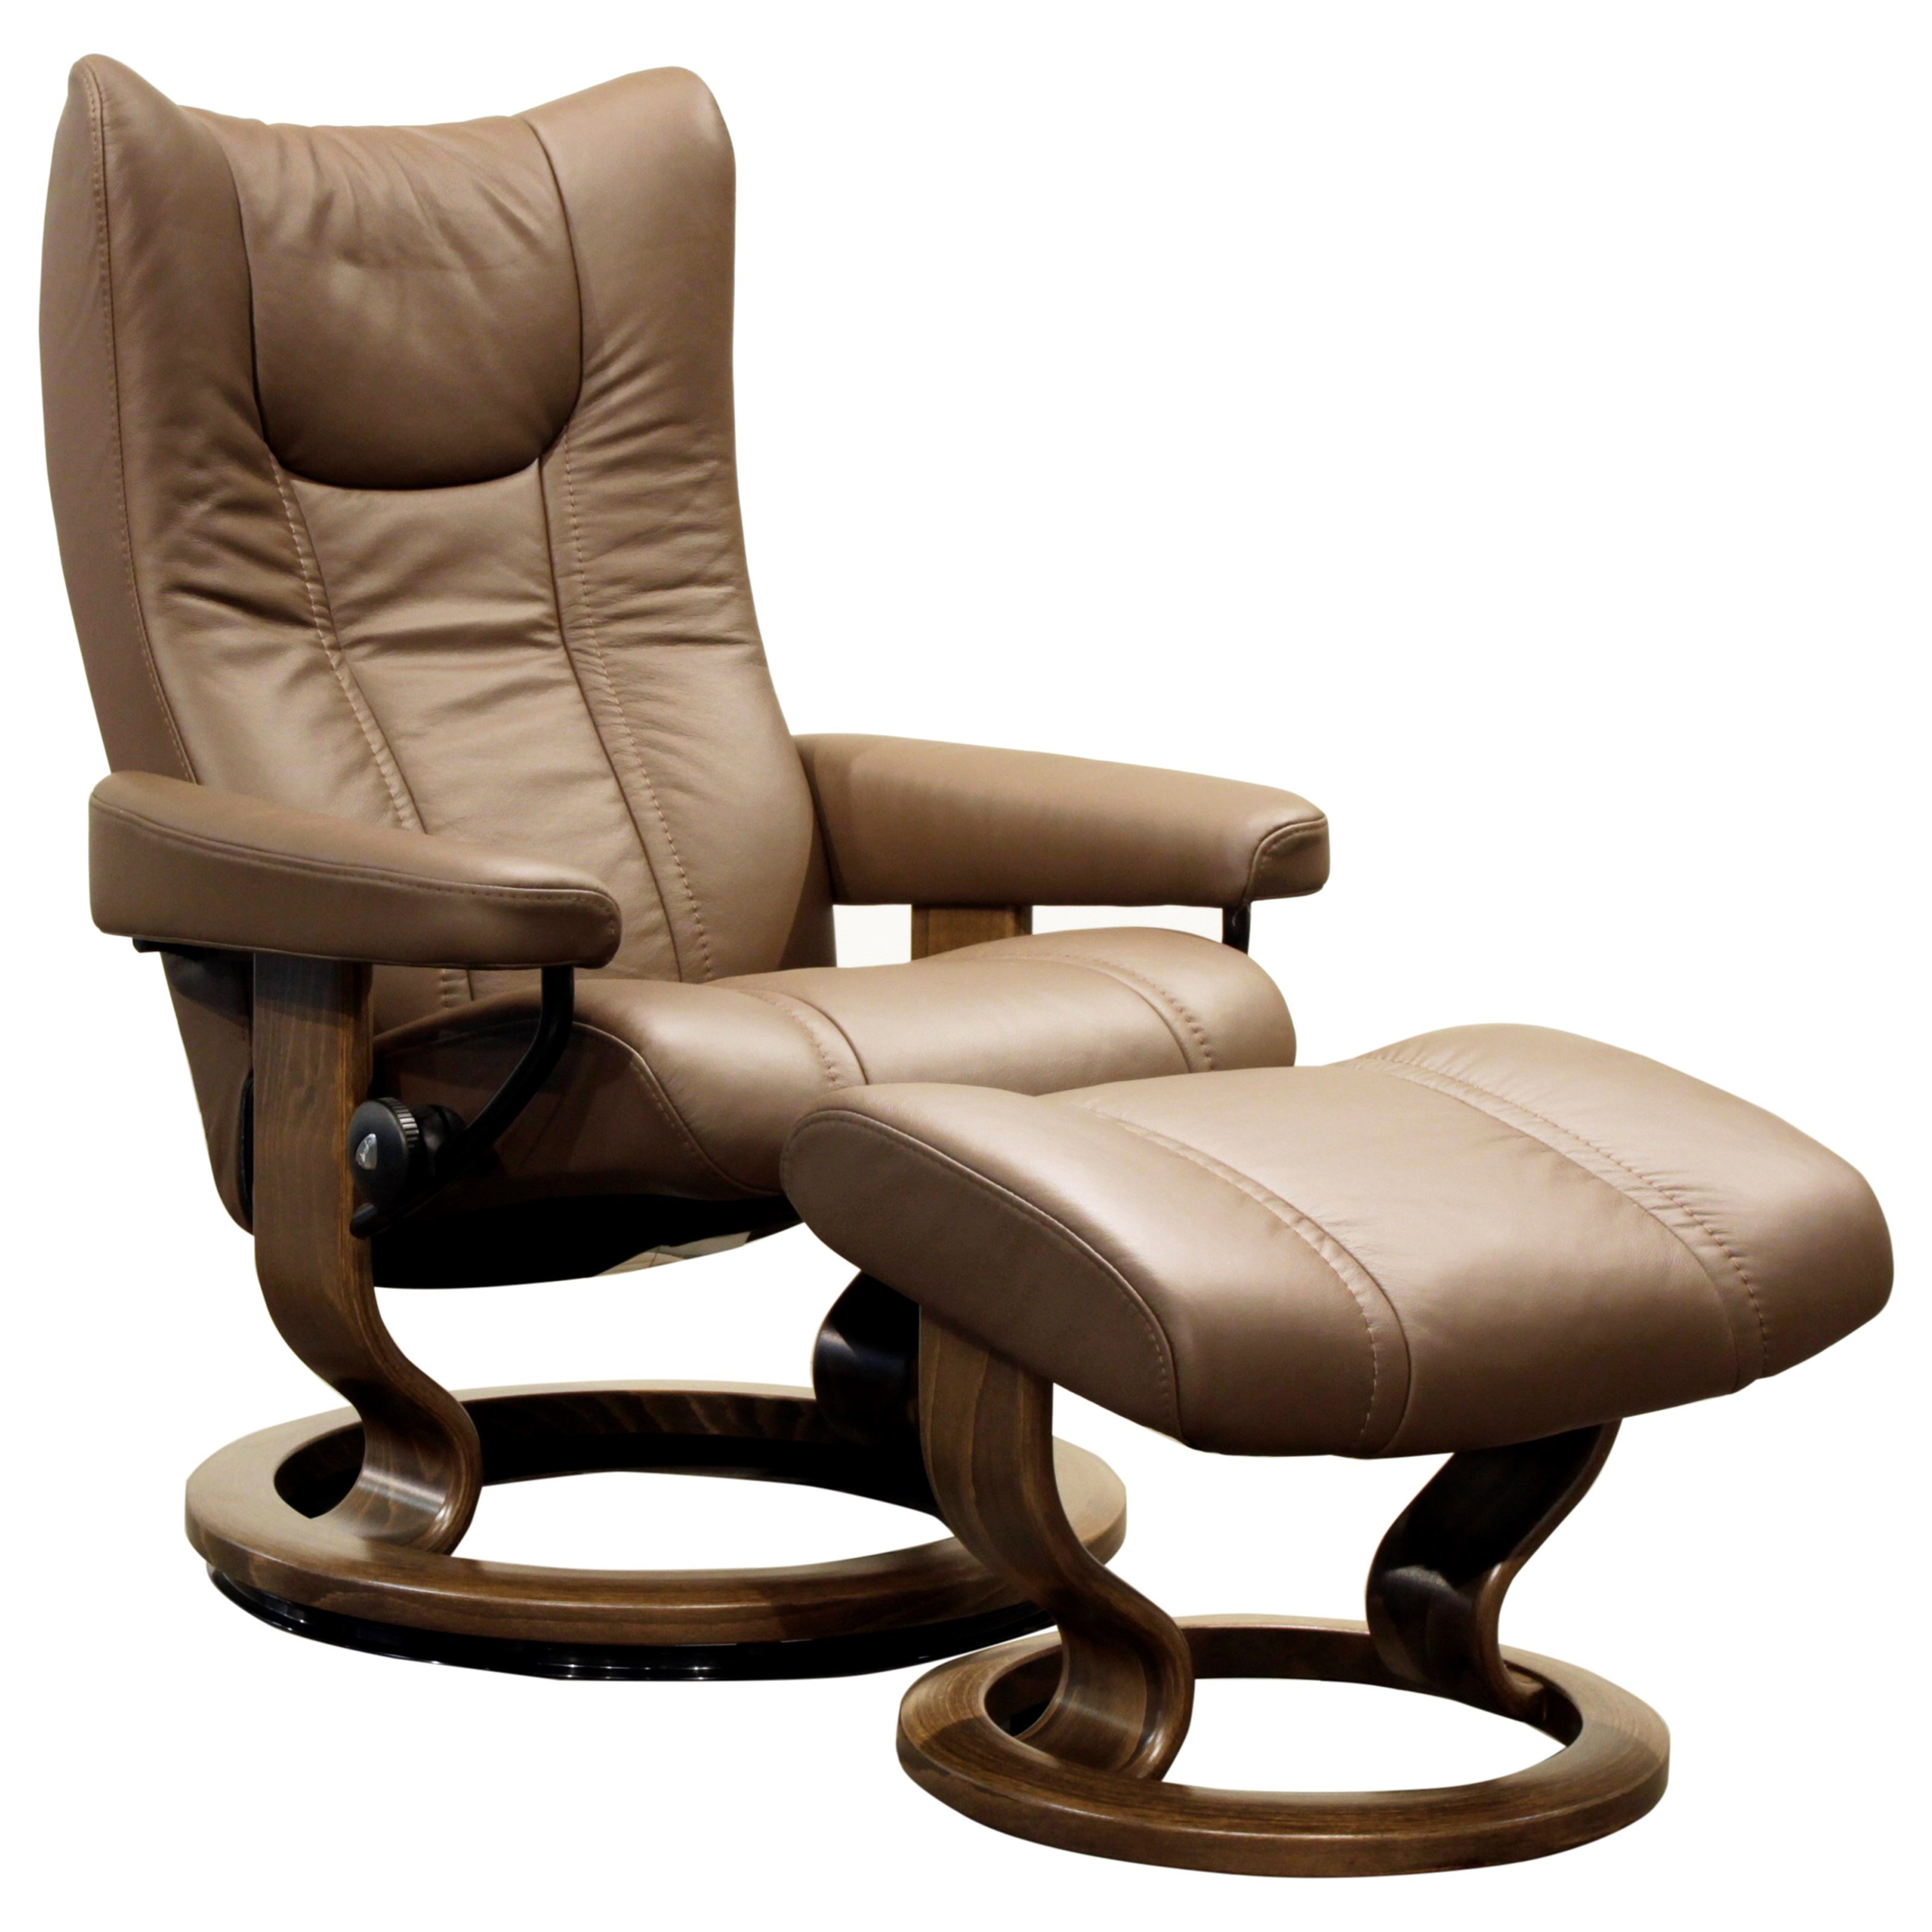 Wing Small Stressless Chair & Ottoman by Stressless at HomeWorld Furniture